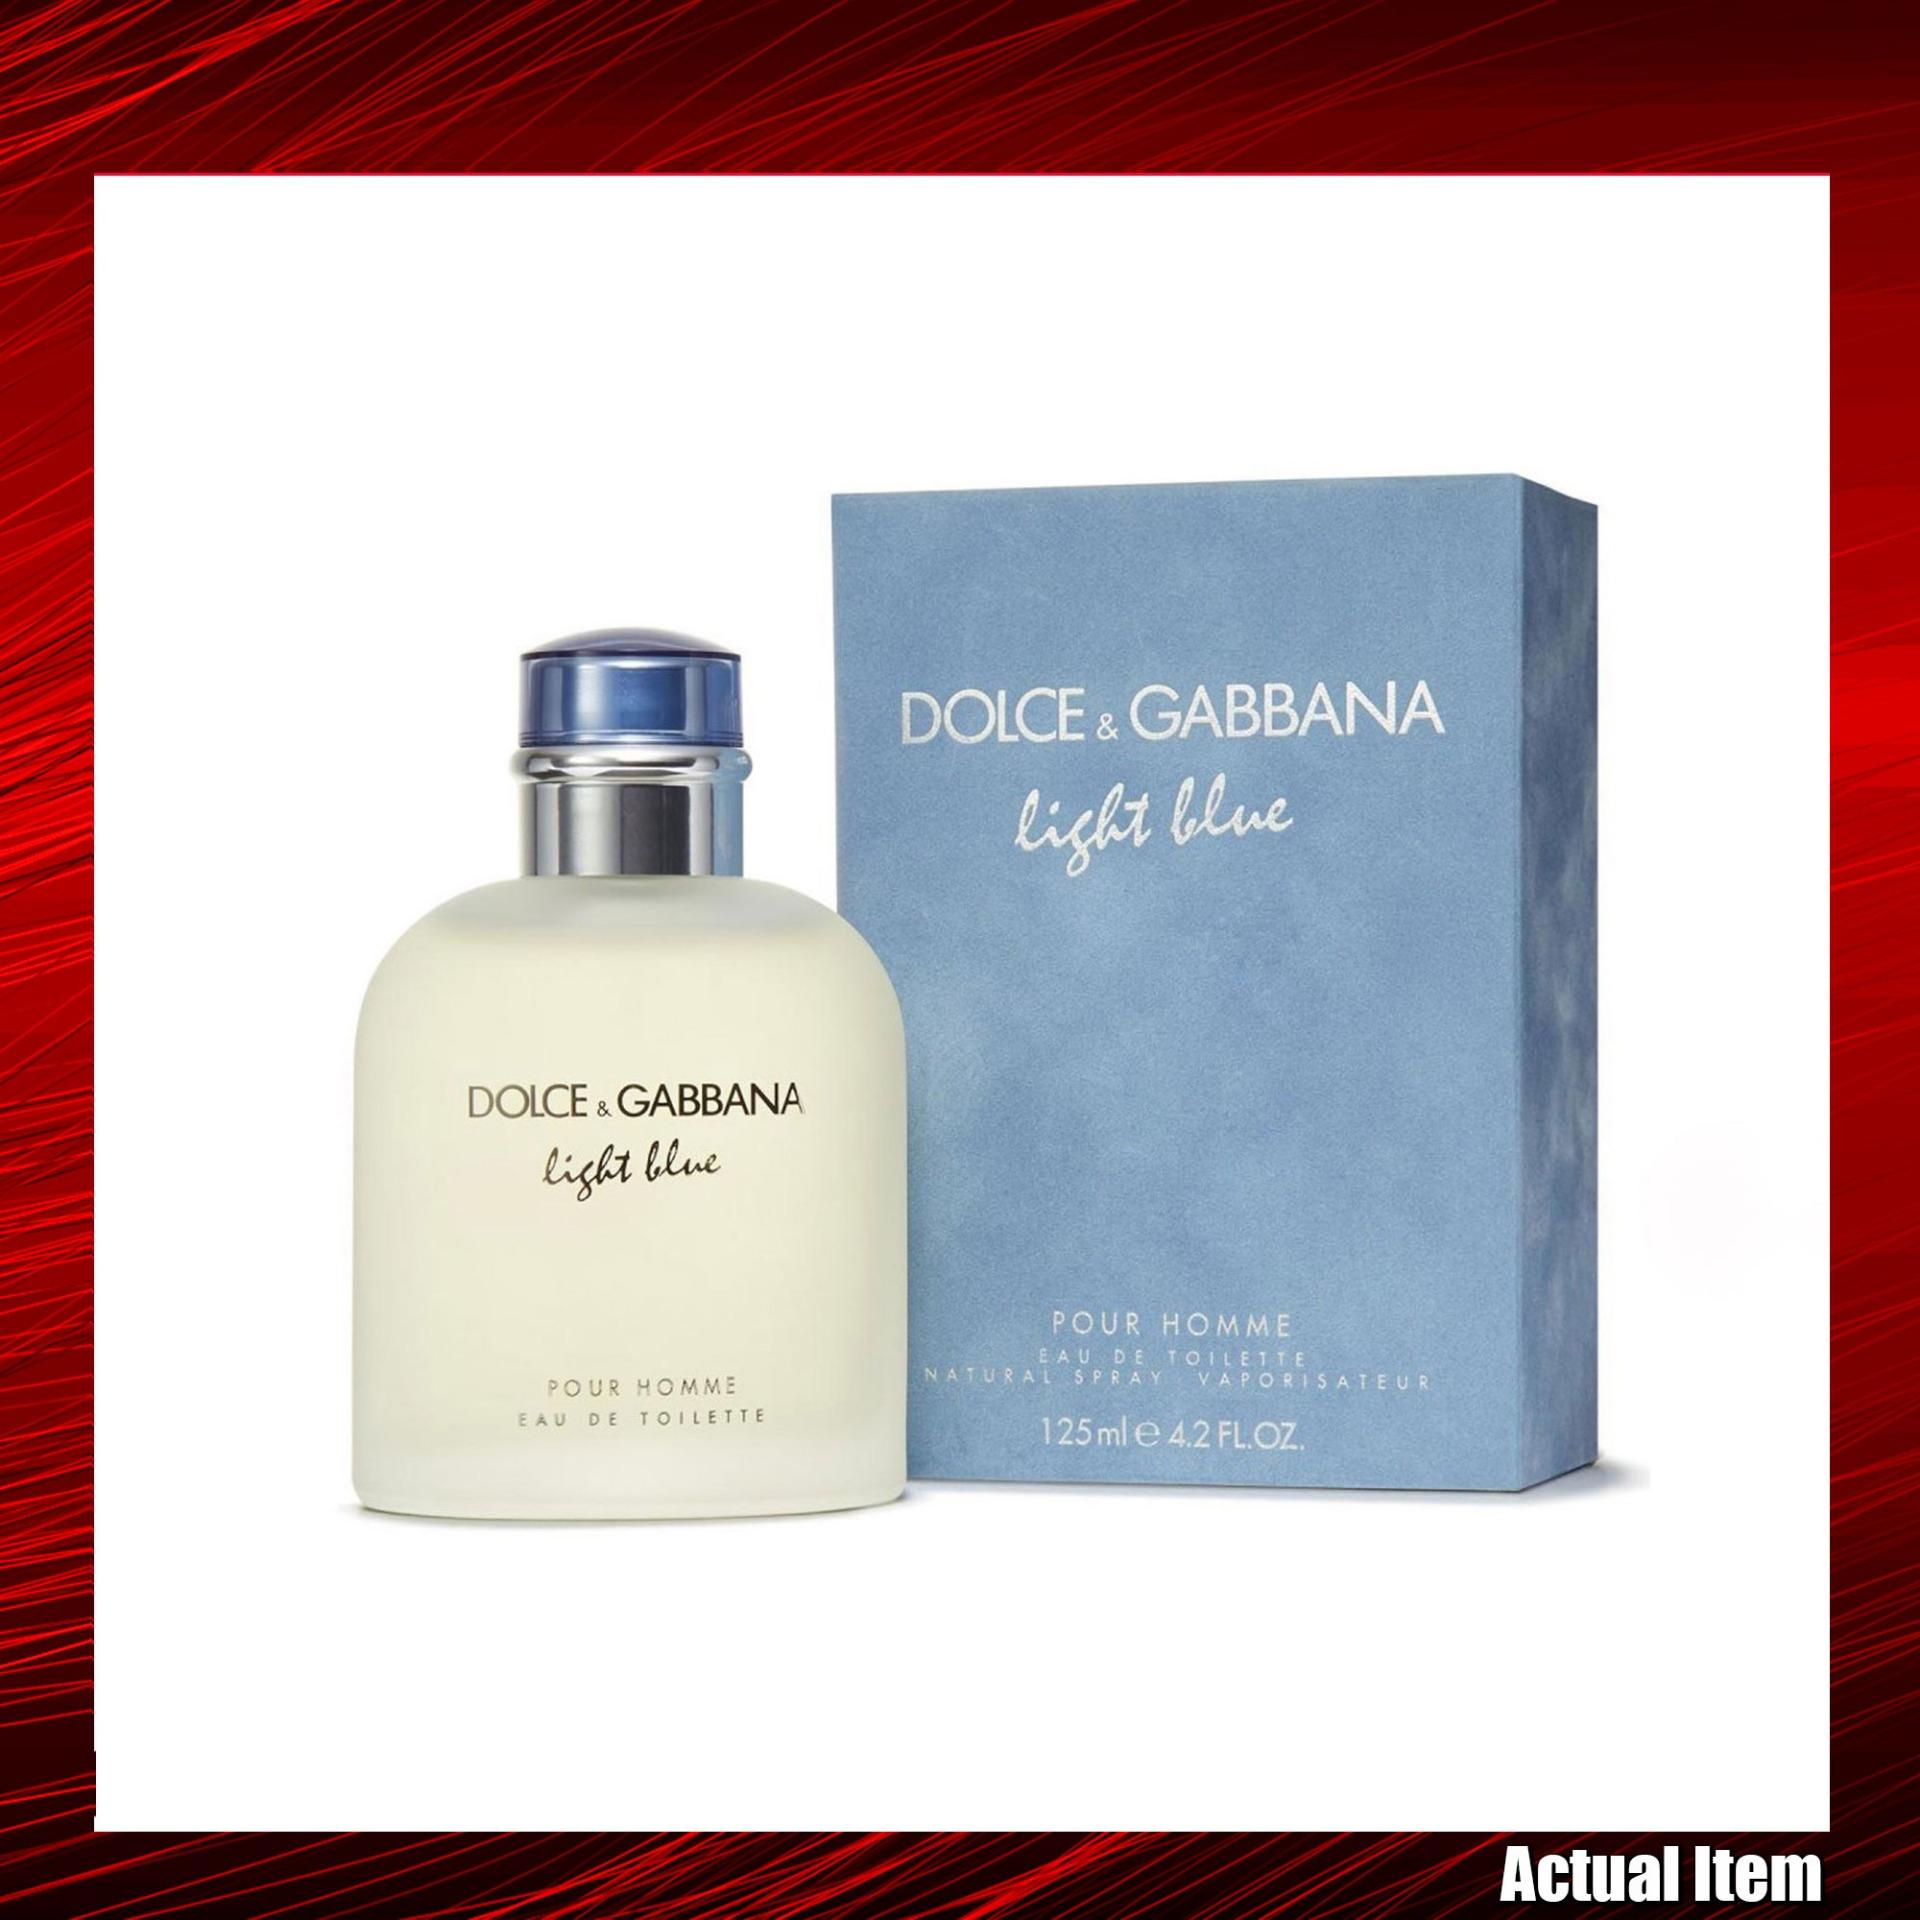 Dolce and Gabbana Philippines  Dolce and Gabbana price list - Dolce ... fcaf837c20d6